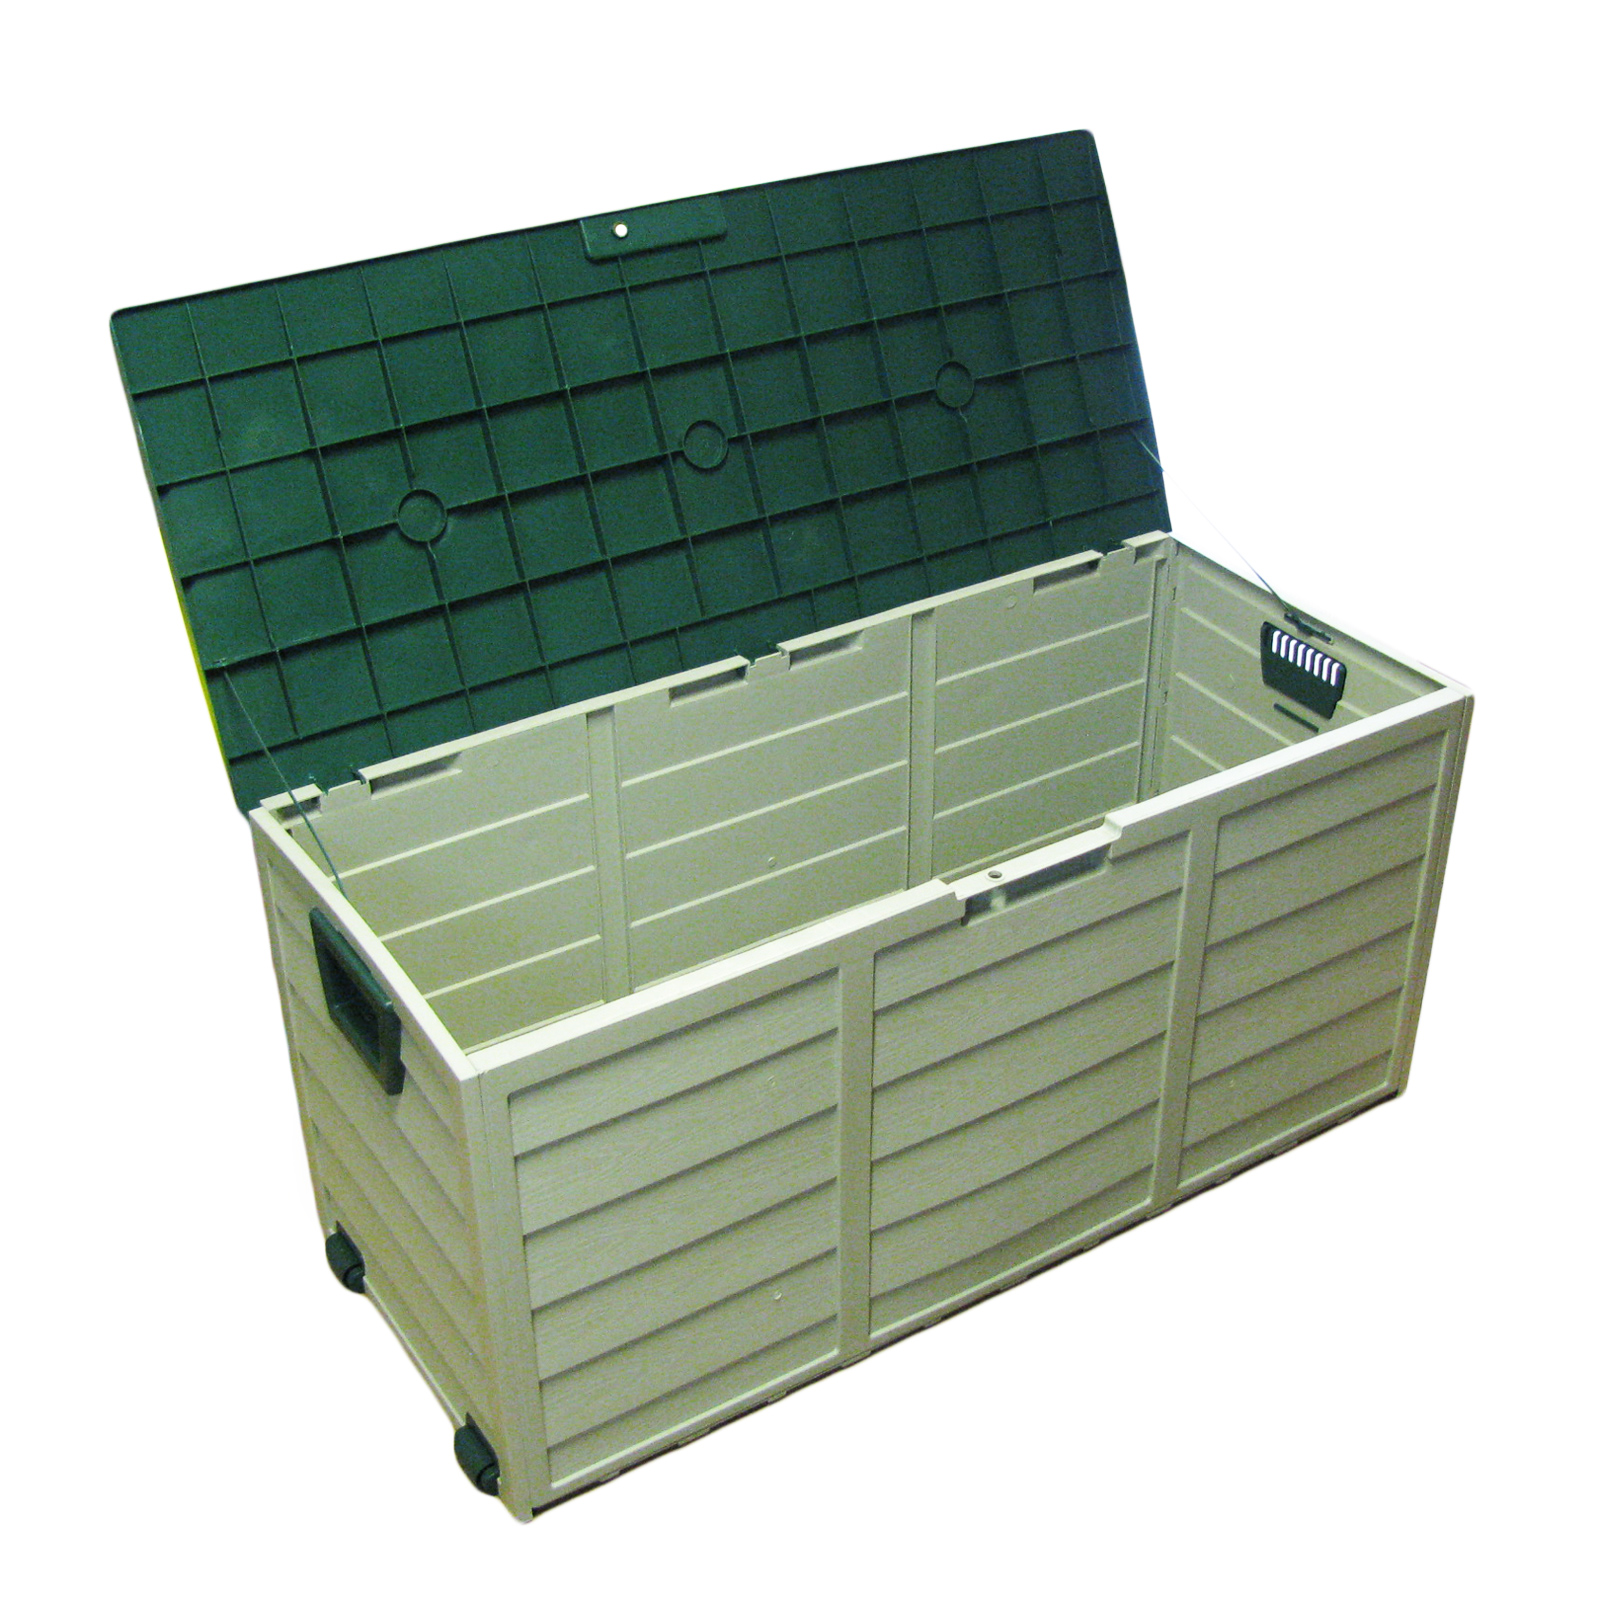 plastic garden portable outdoor shed storage box chest on wheels